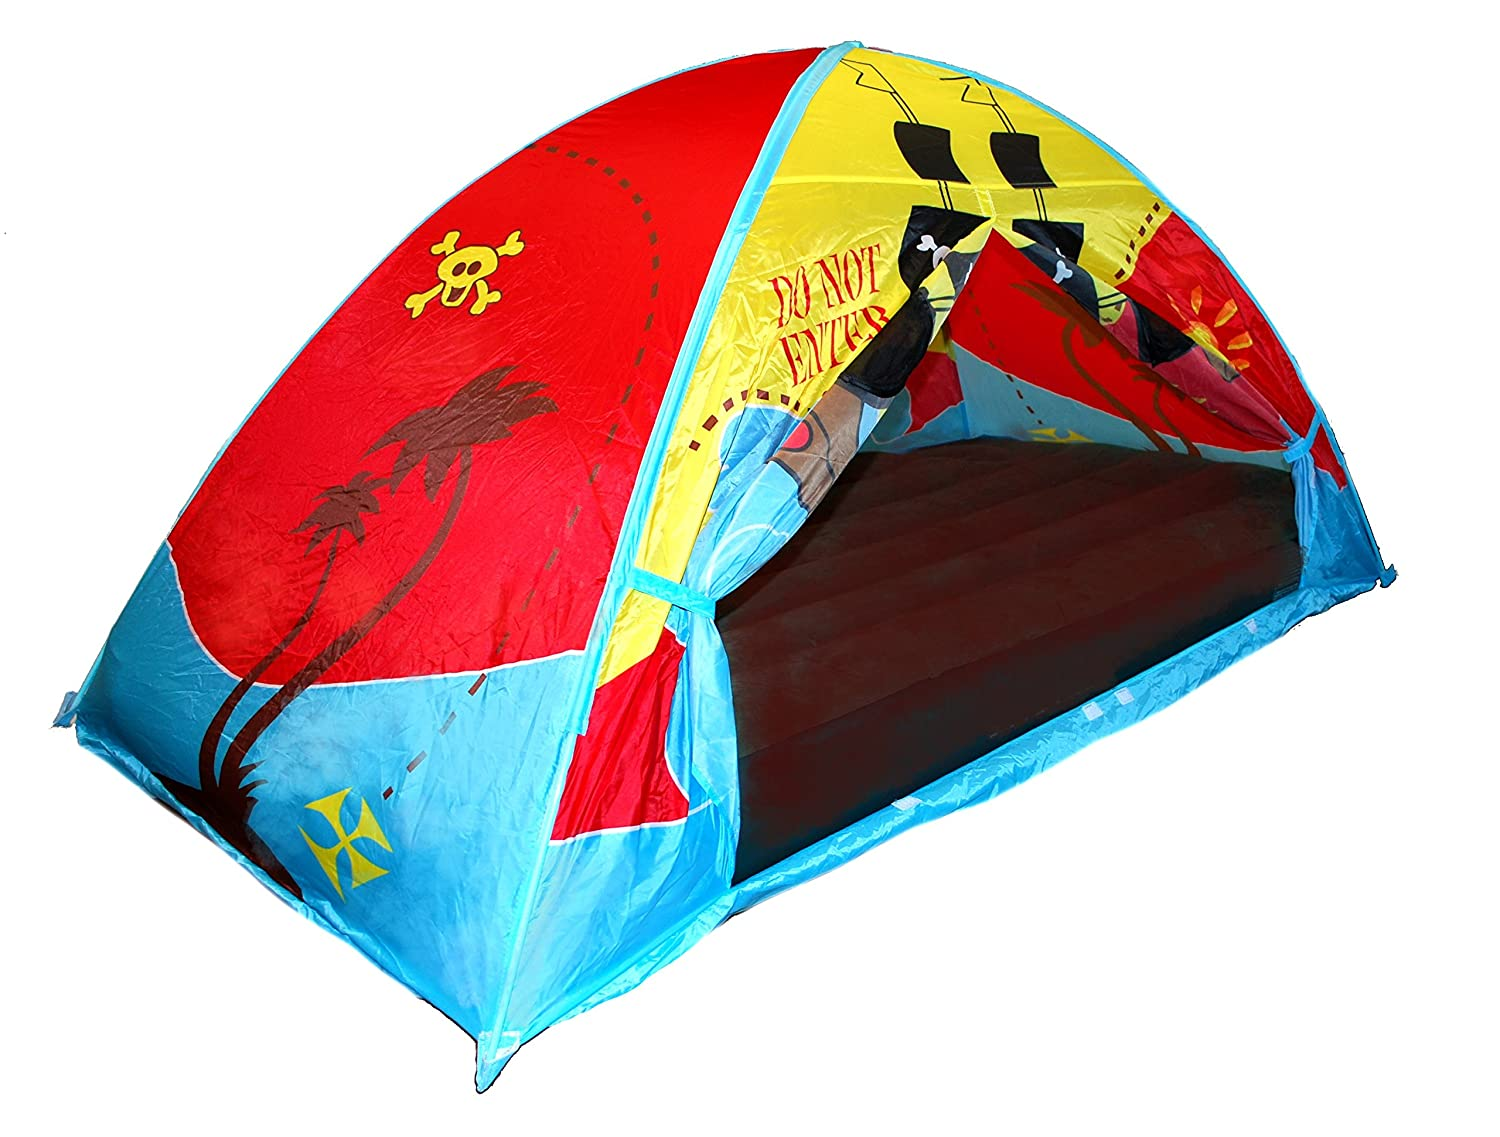 Bed Tent Twin Size Images